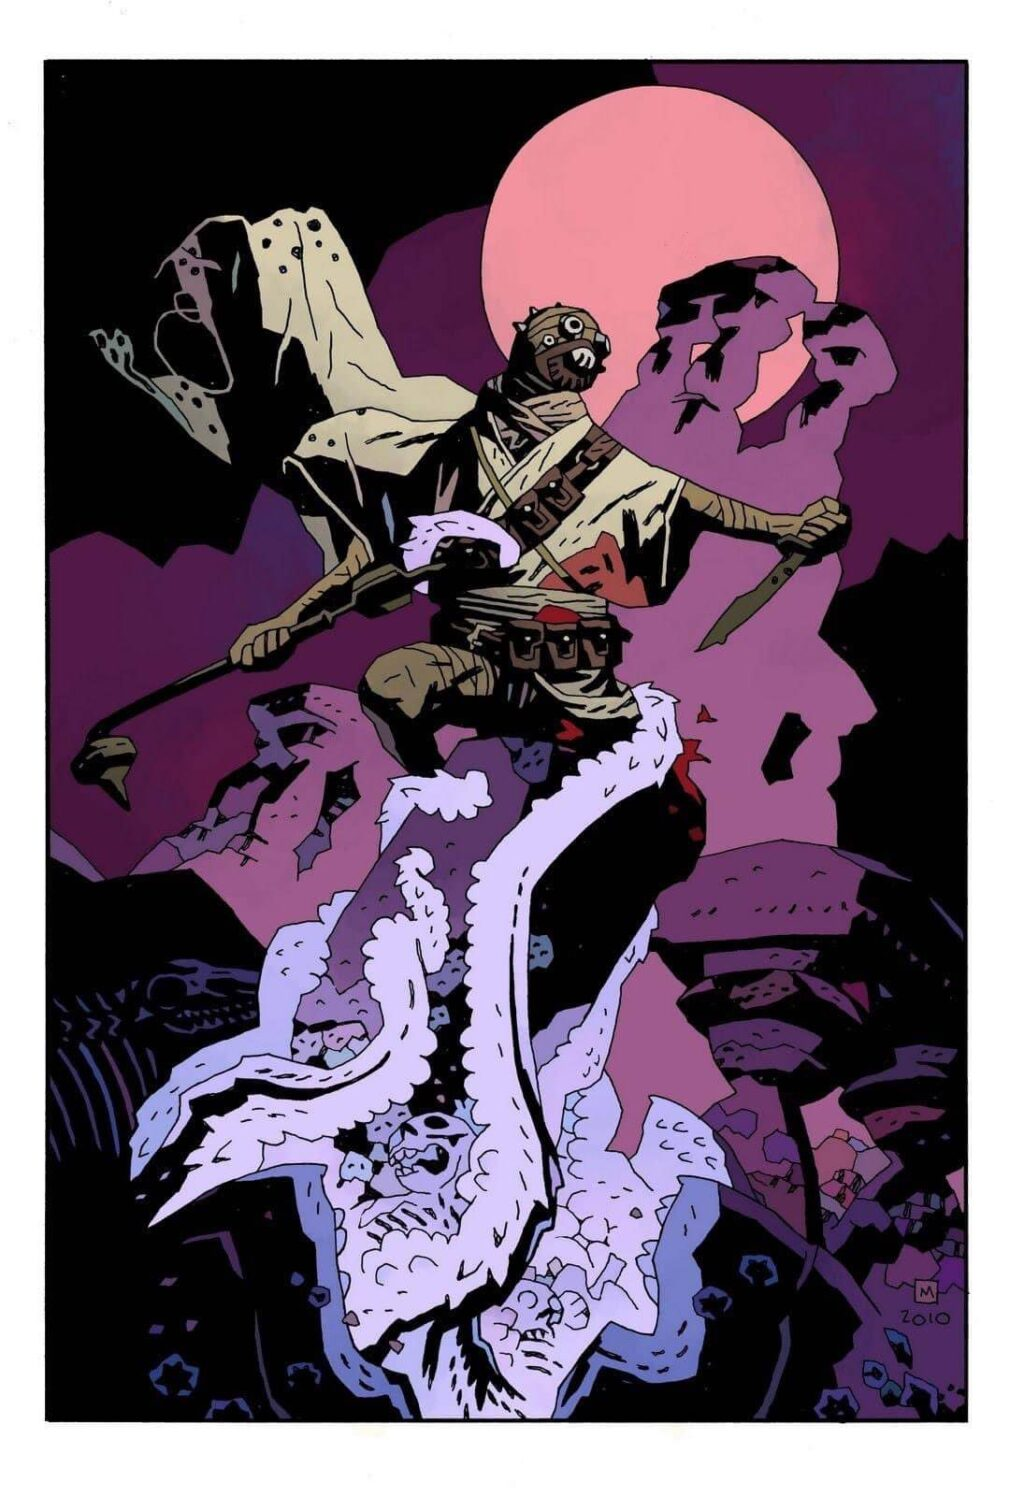 milke mignola tusken raider star wars 1 1024x1496 - Mike Mignola Shares Incredible Quarantine Artwork Of All Your Favourite Characters